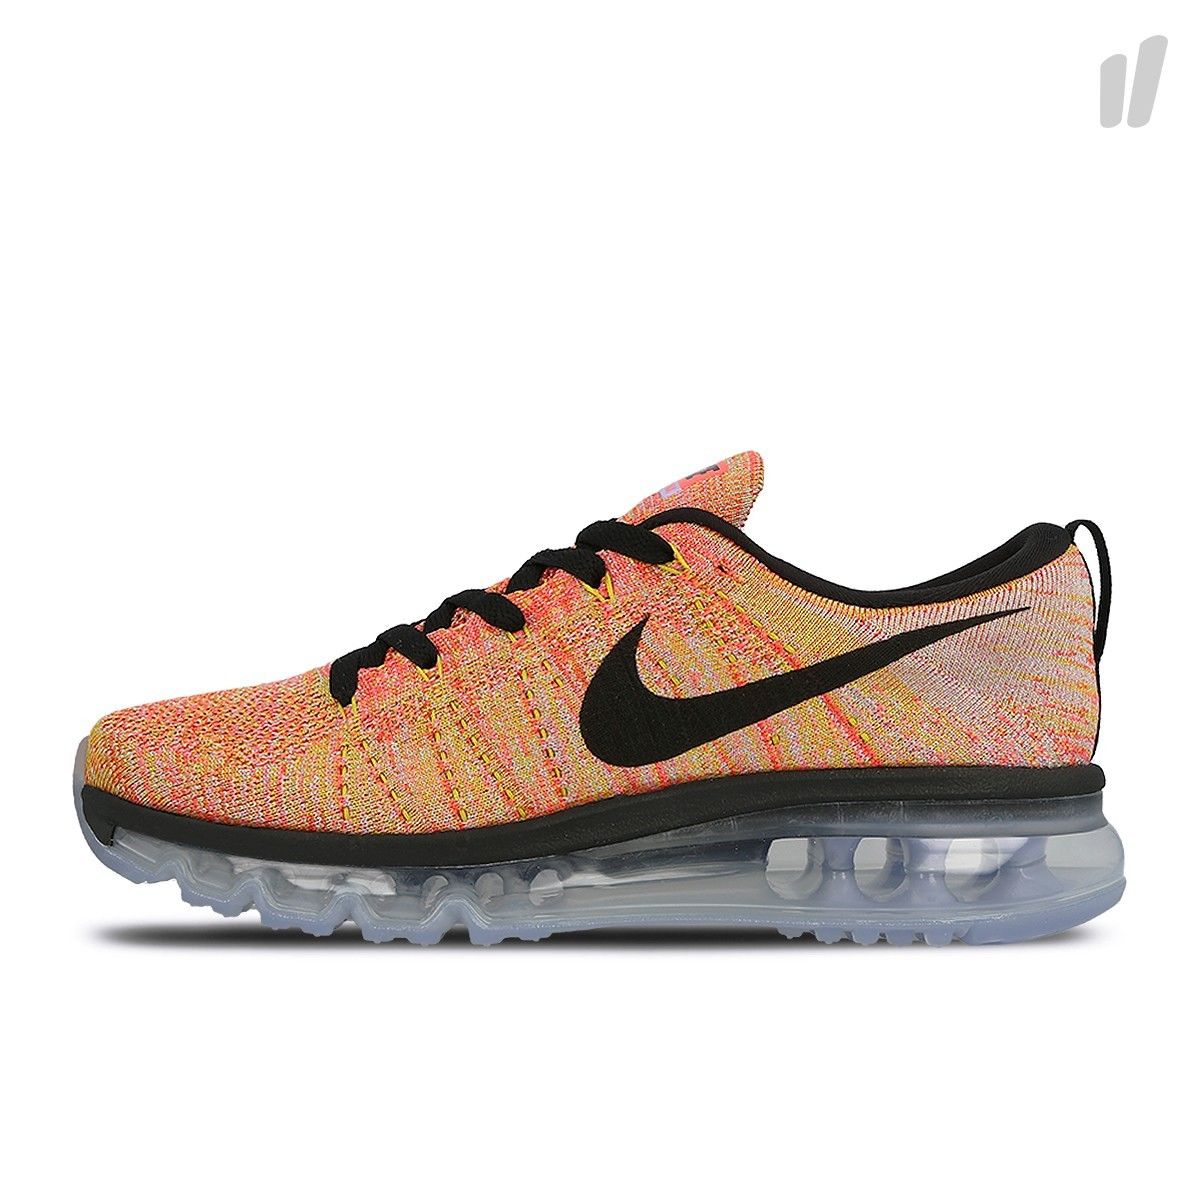 online store 54a08 2fda8 Details about Nike Flyknit Max 620659 406 Womens Trainers